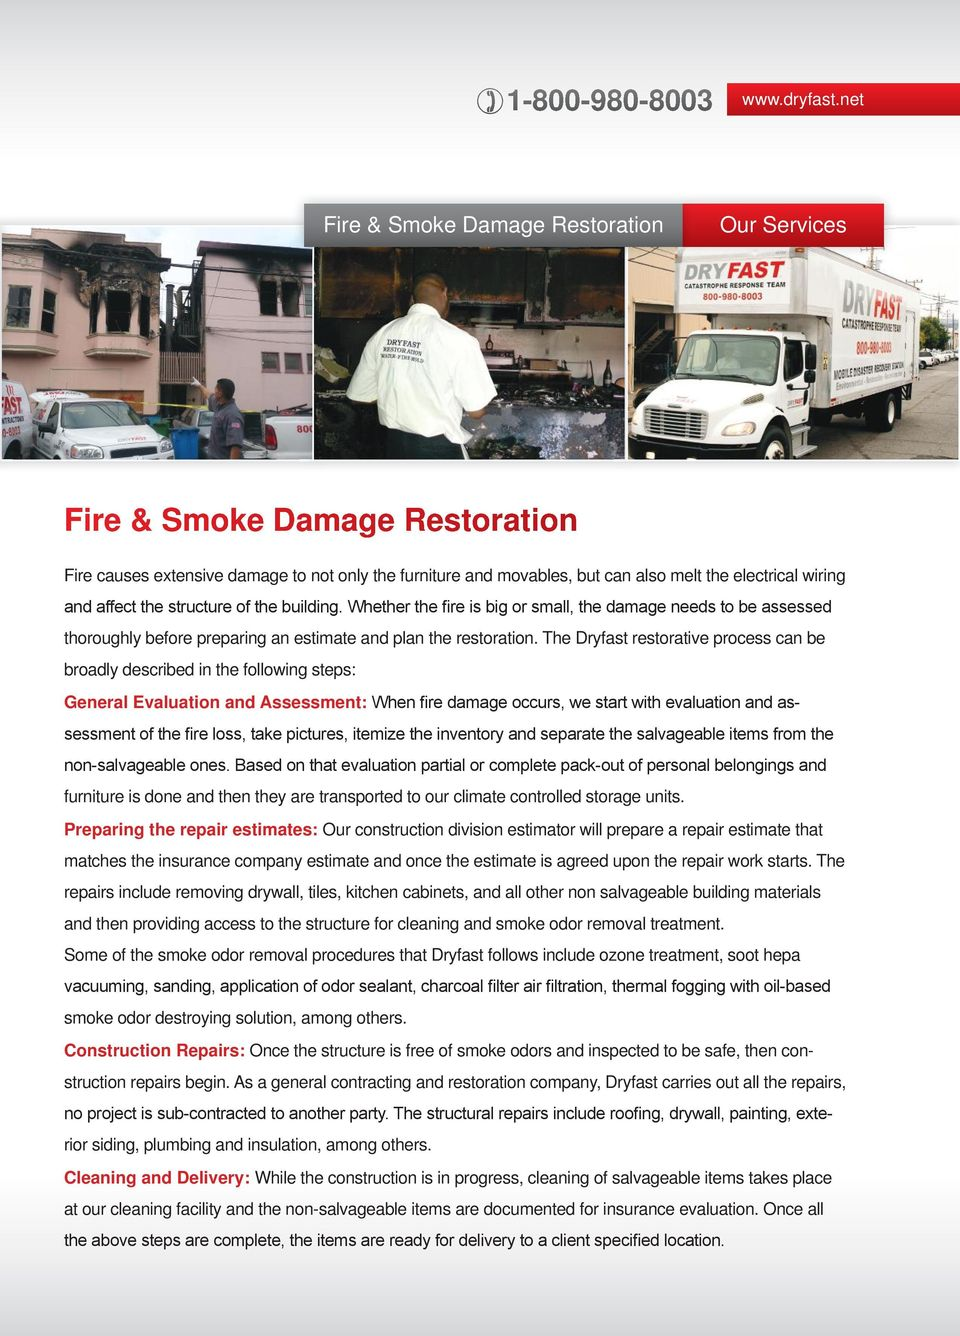 affect the structure of the building. Whether the fire is big or small, the damage needs to be assessed thoroughly before preparing an estimate and plan the restoration.